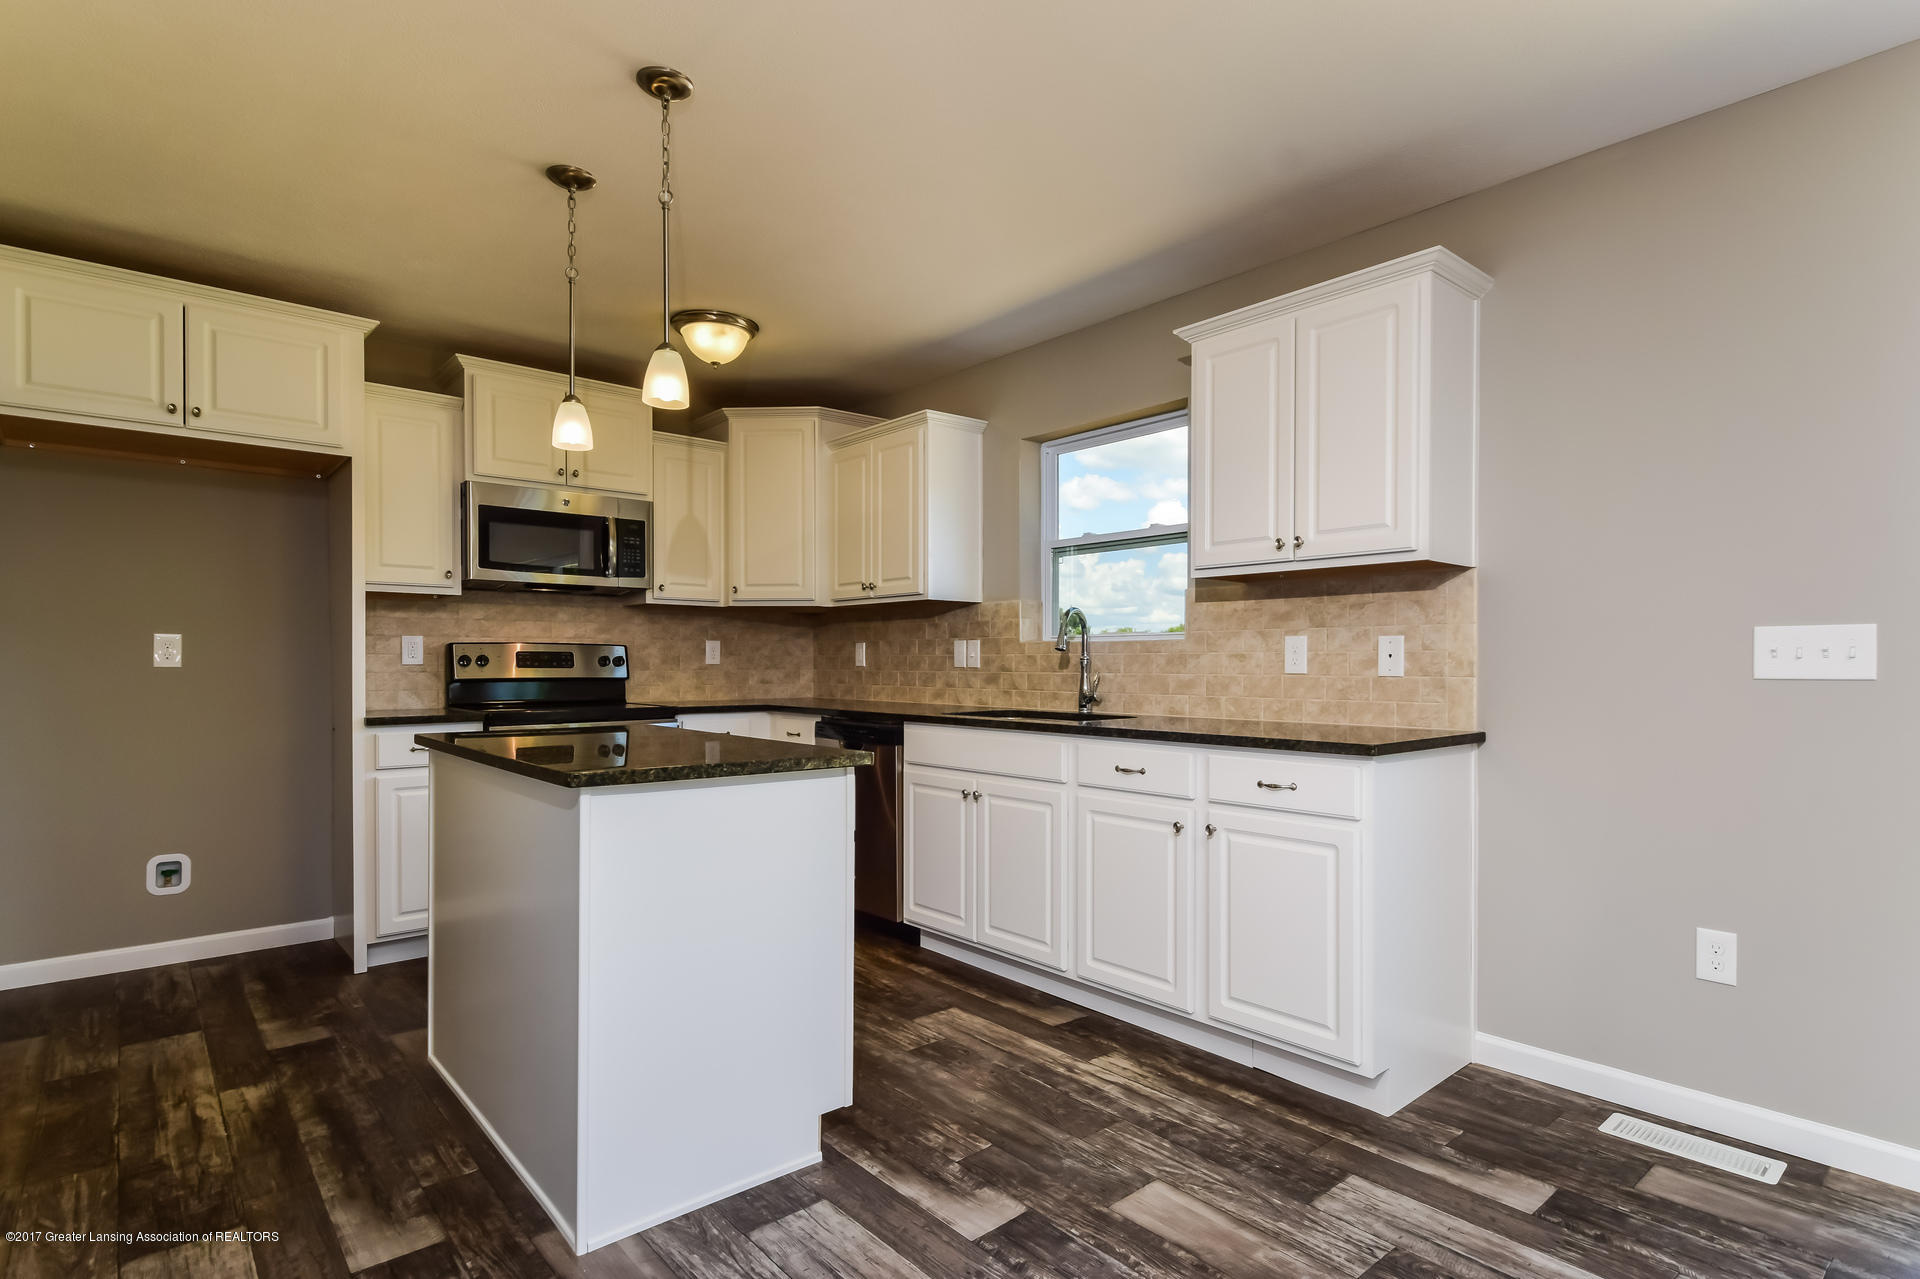 960 Pennine Ridge Way - Kitchen MDE017-E2070-3 - 7